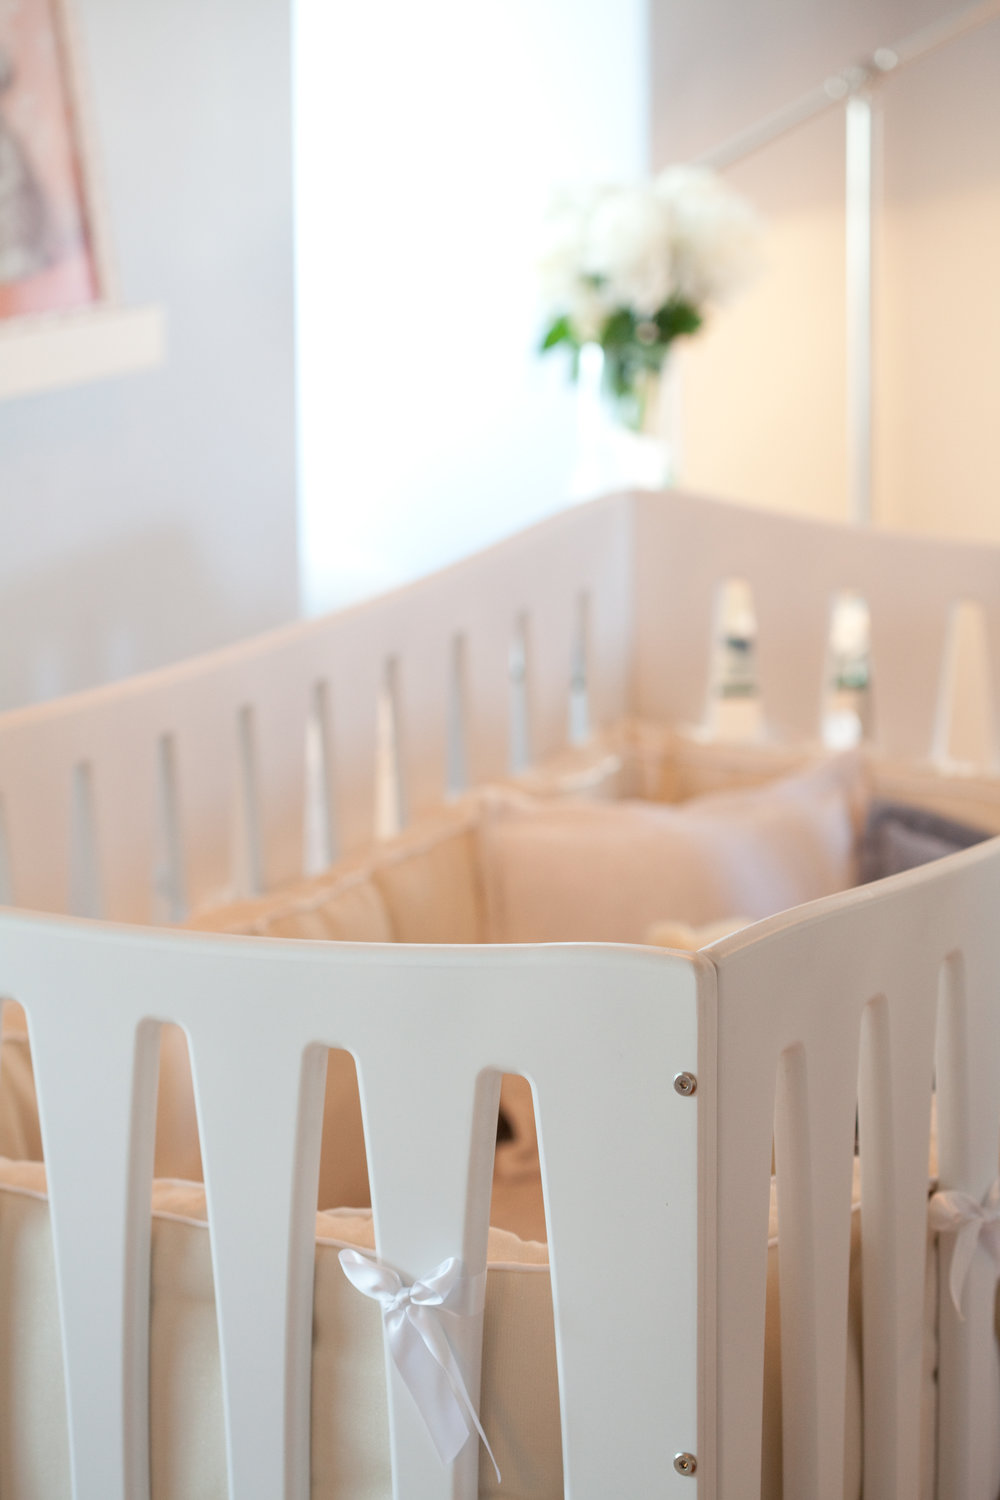 crib, nursery, white, modern, soft tones, soft textures, window, lighting